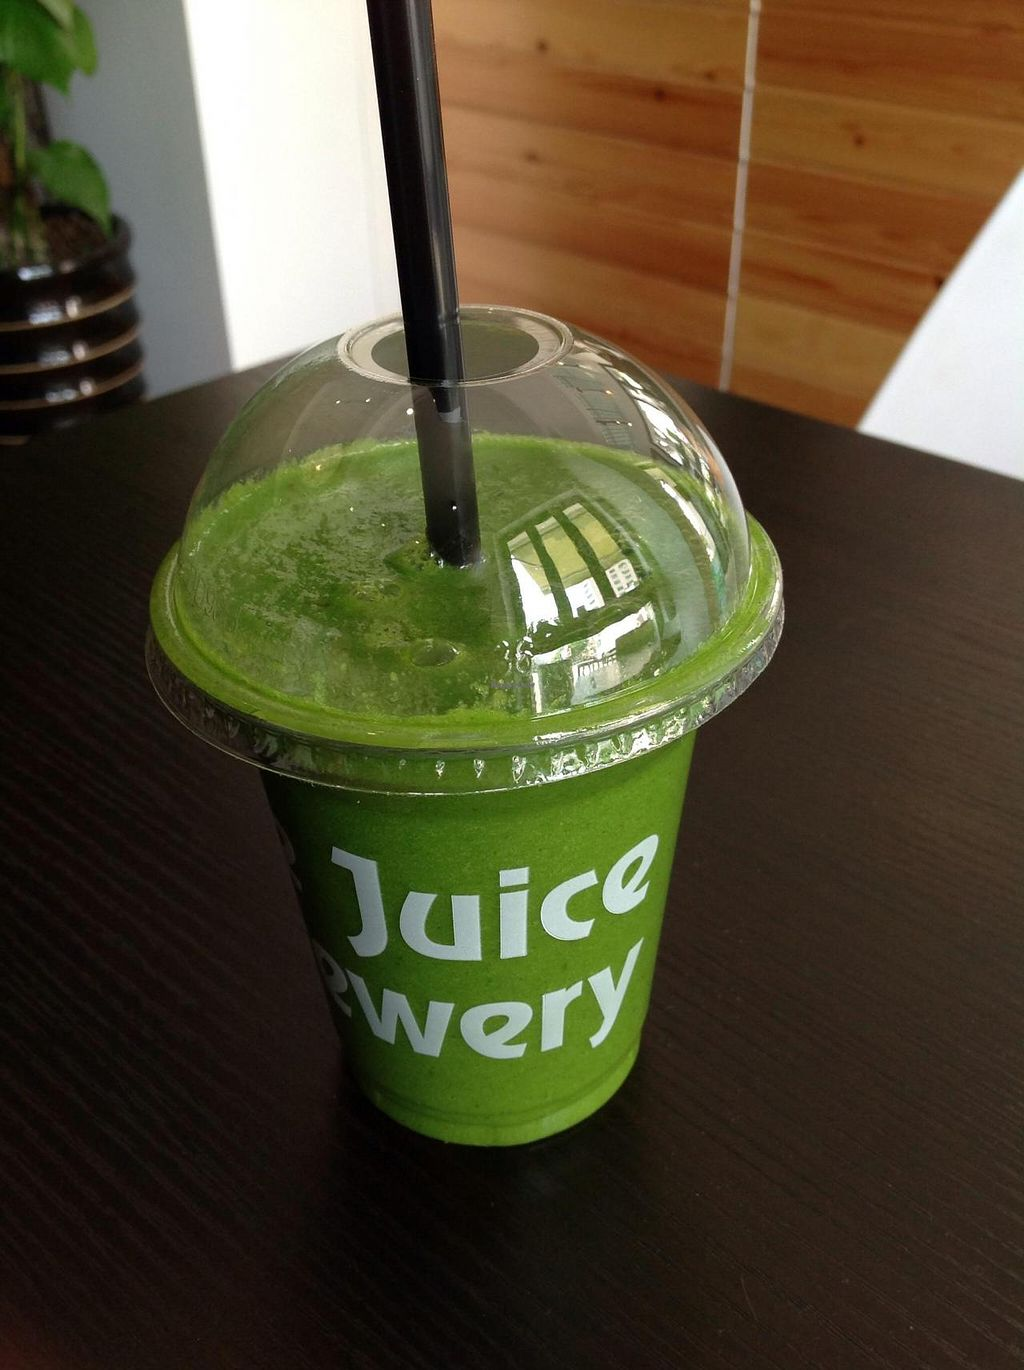 """Photo of The Juice Brewery  by <a href=""""/members/profile/NCC"""">NCC</a> <br/>Thursdays smoothie special, tweeted a bit to make it less sugary.  <br/> May 15, 2014  - <a href='/contact/abuse/image/47361/70063'>Report</a>"""